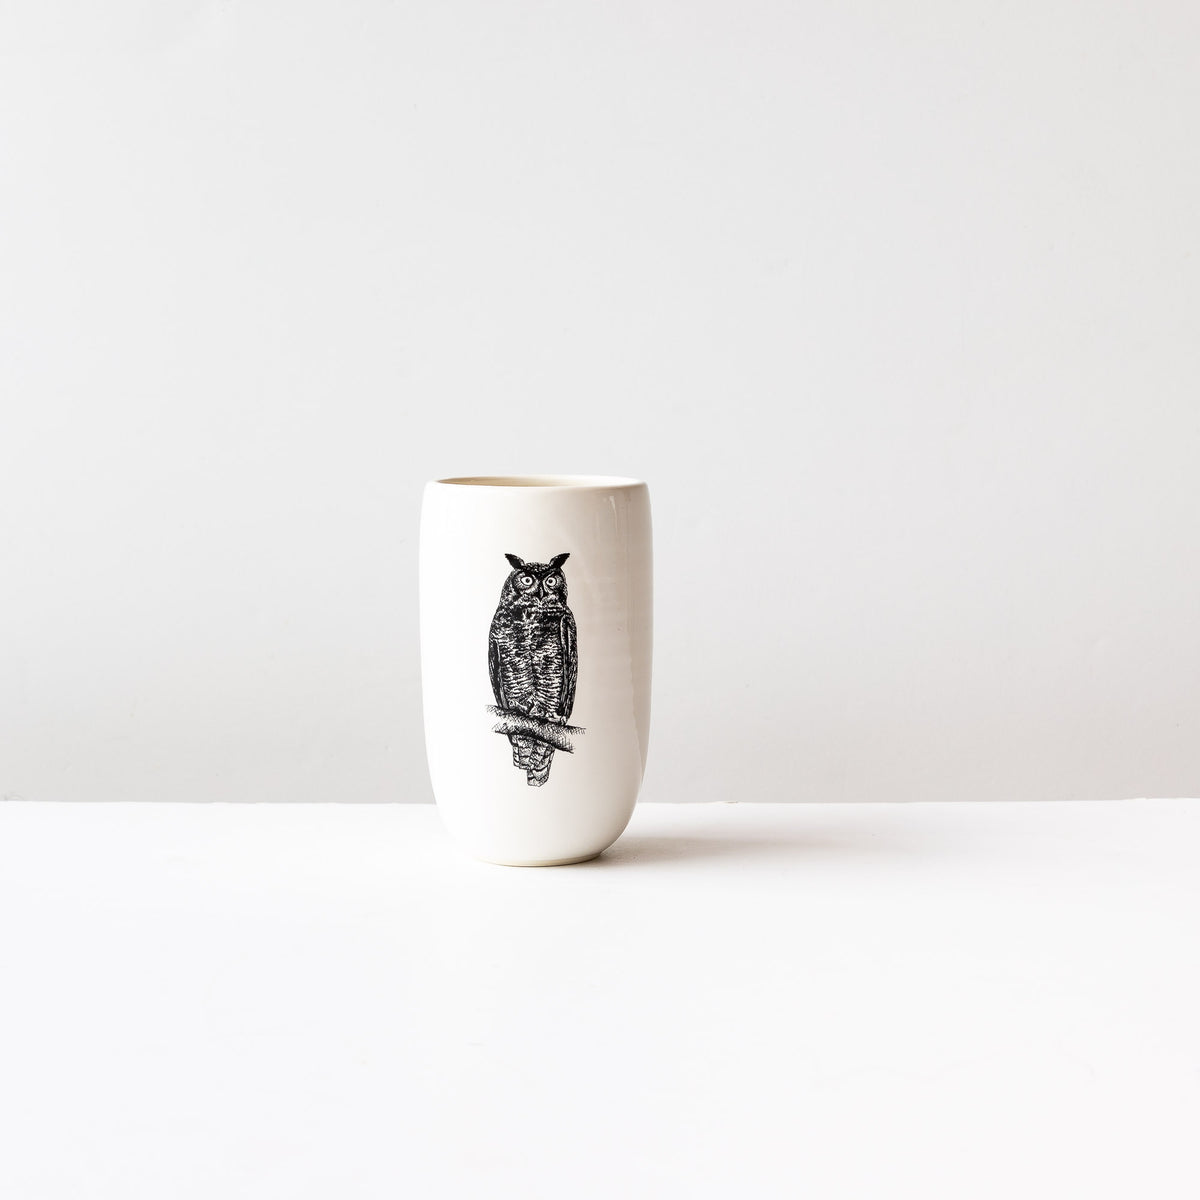 Great Horned Owl - Handmade Porcelain Beer Tumbler / Glass - Sold by Chic & Basta